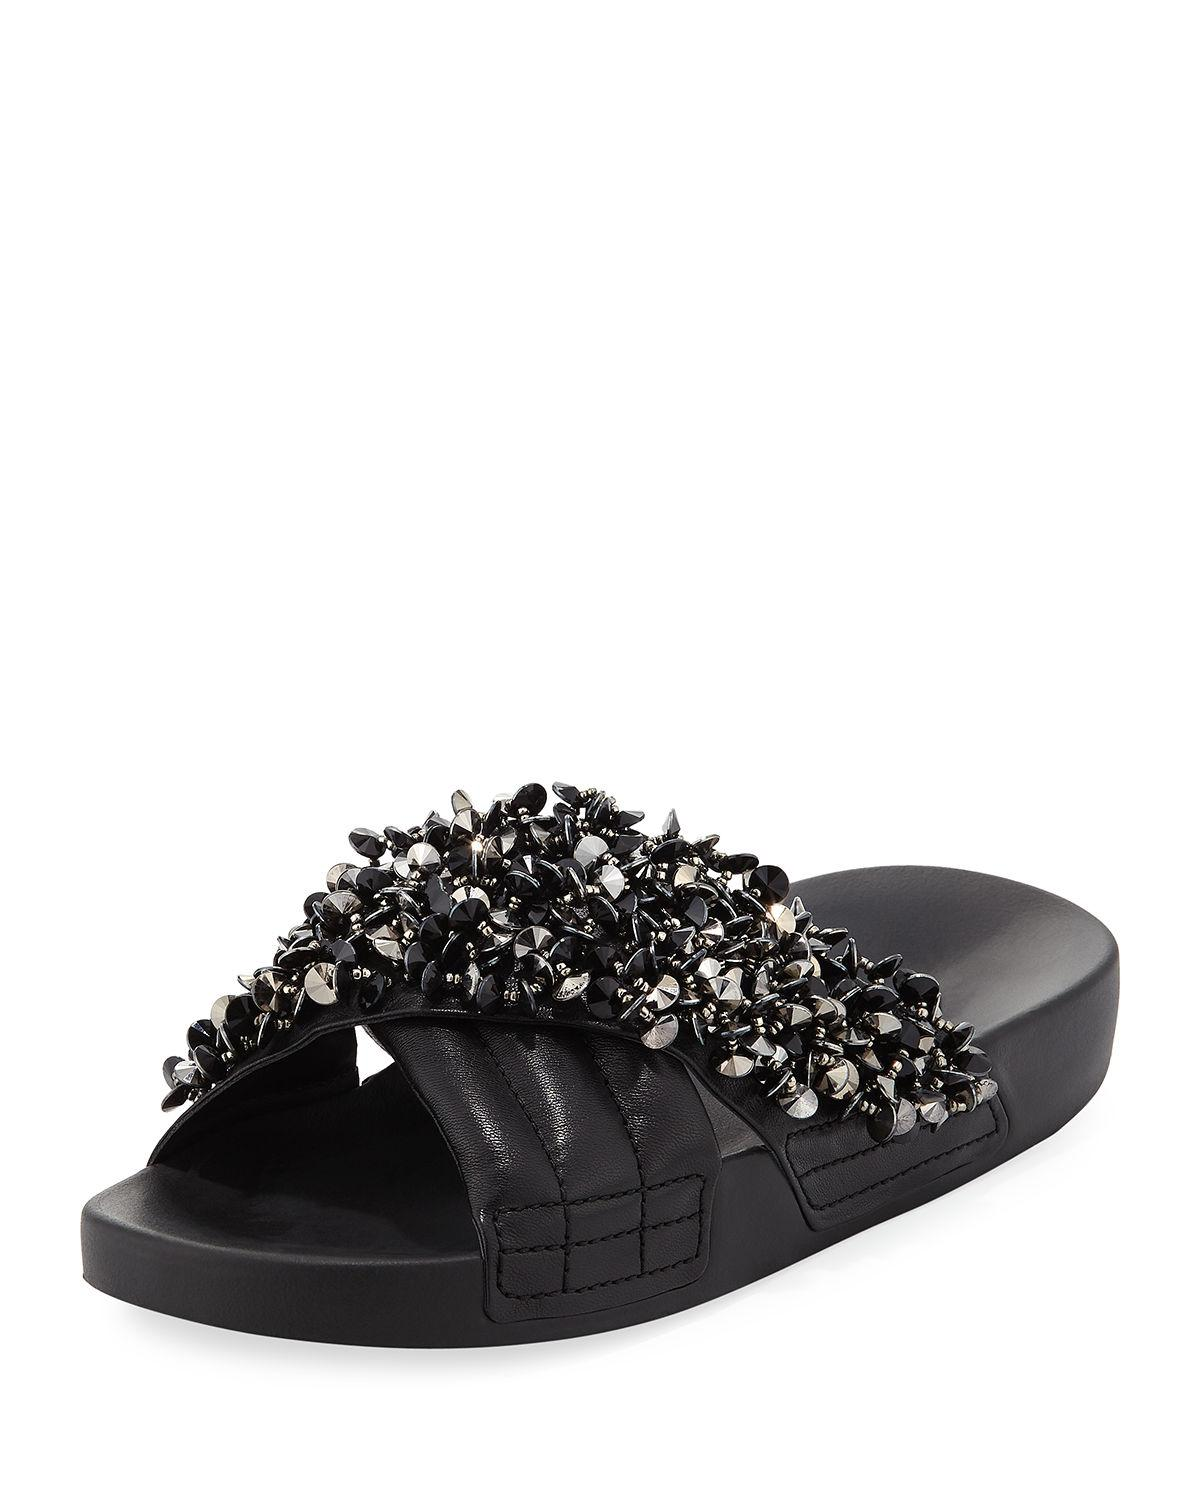 aeab1cbbd LOGAN EMBELLISHED POOL SANDAL. EXCLUSIVELY AT NEIMAN MARCUS (Black only) Tory  Burch quilted leather ...